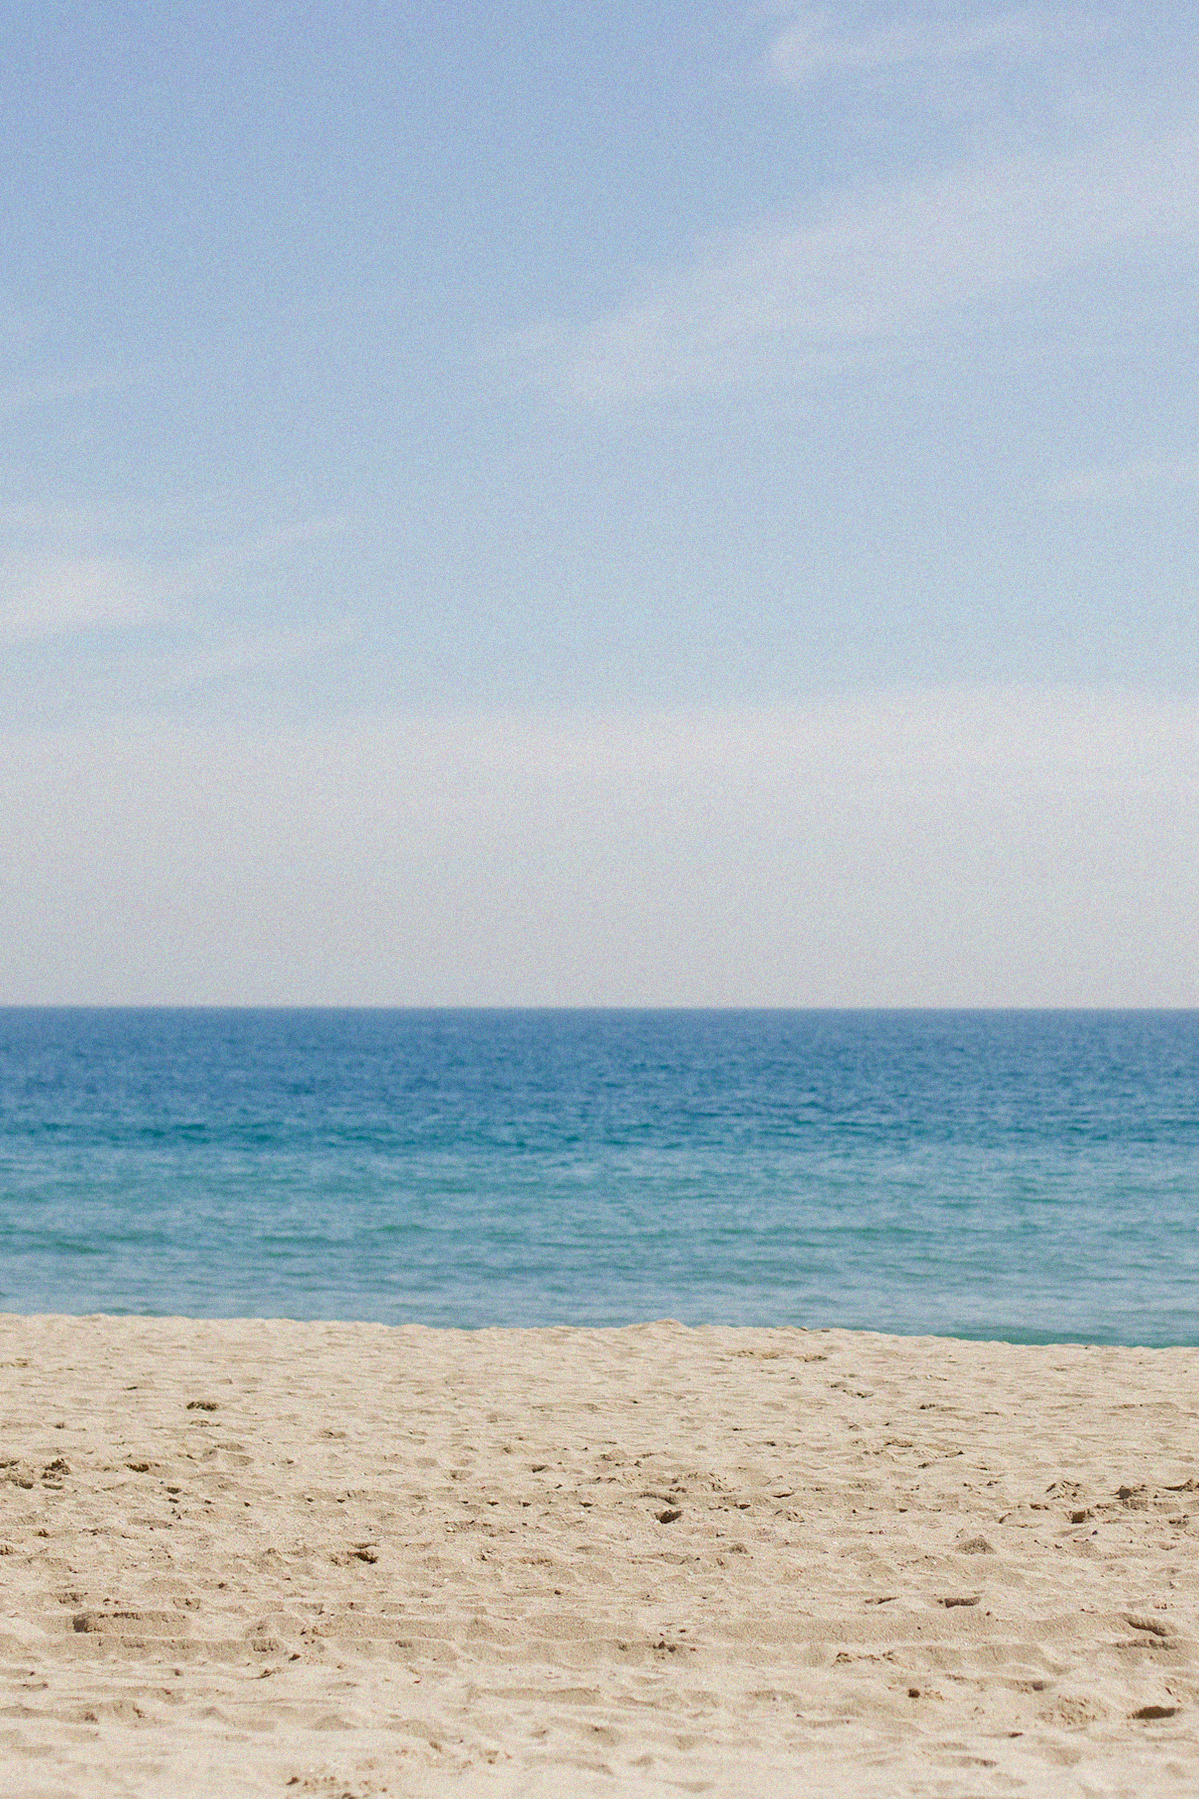 Barcelona beach, non touristic things to do in Barcelona, Barcelona sightseeing, Barcelona, citytour Barcelona